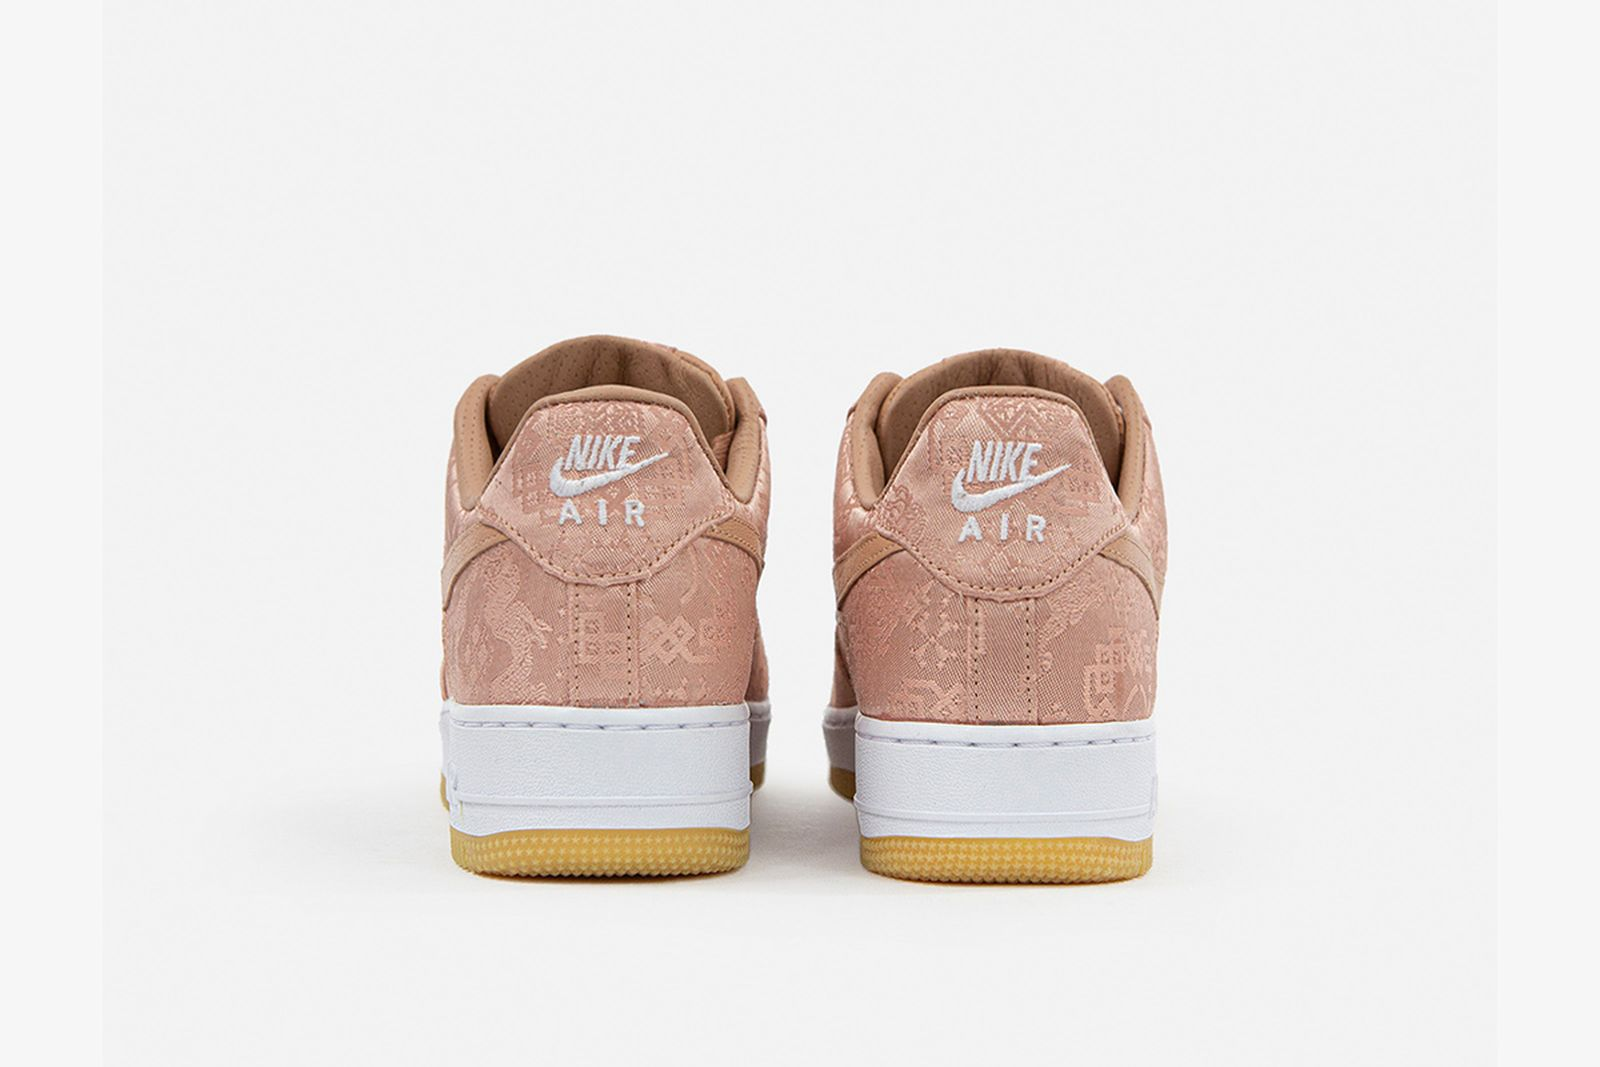 clot-nike-air-force-1-rose-gold-release-date-price-product-03